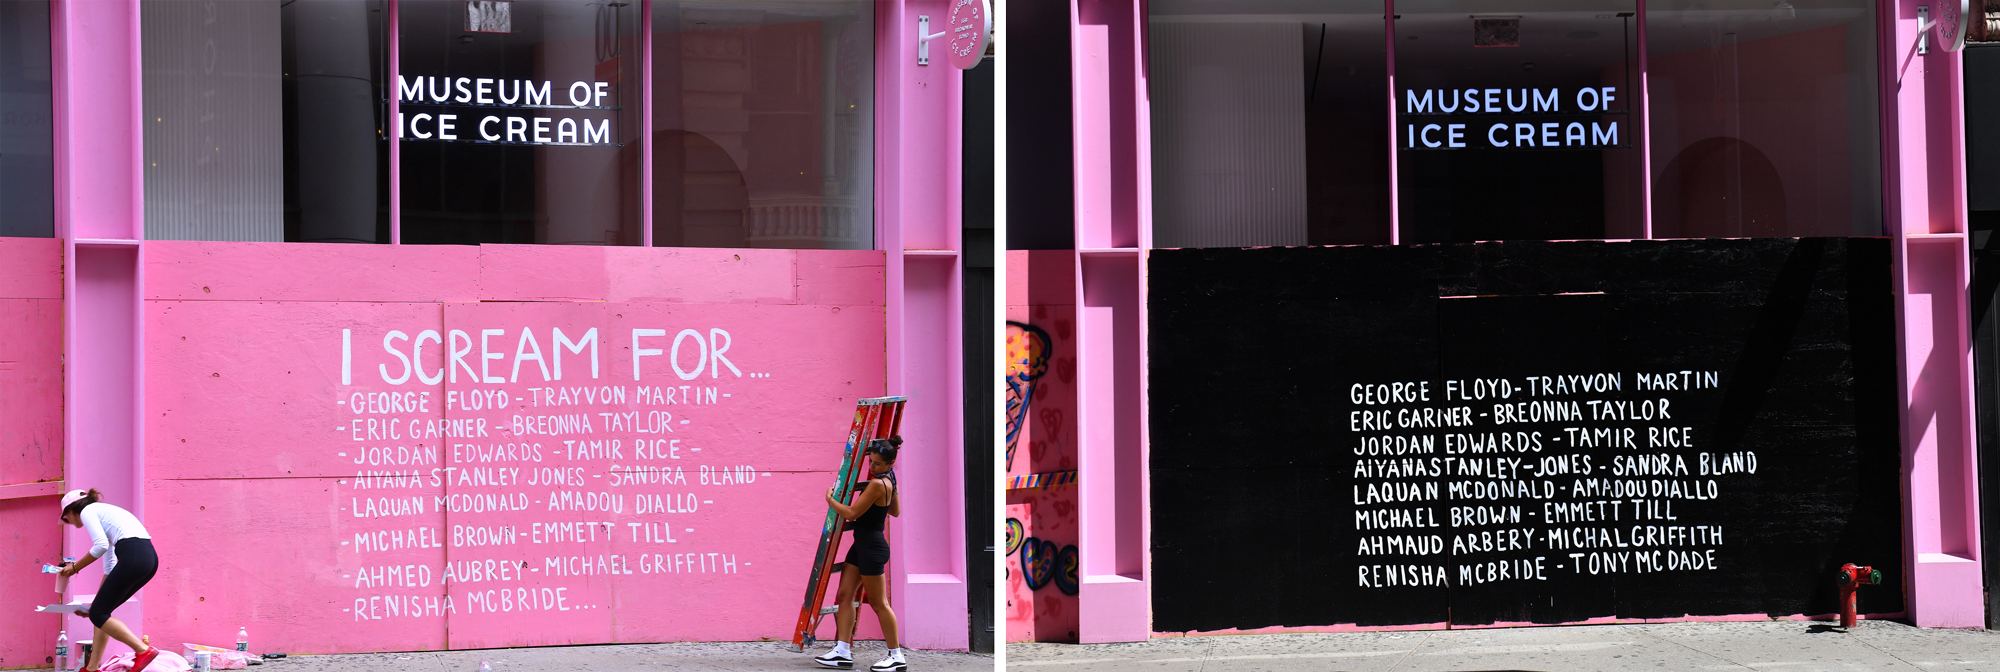 Before and after: the boarded-up storefront of the Museum of Ice Cream was painted pink in supposed solidarity with Black Lives Matter protests. But the color and a spelling mistake led to heavy social media backlash, and a redo.